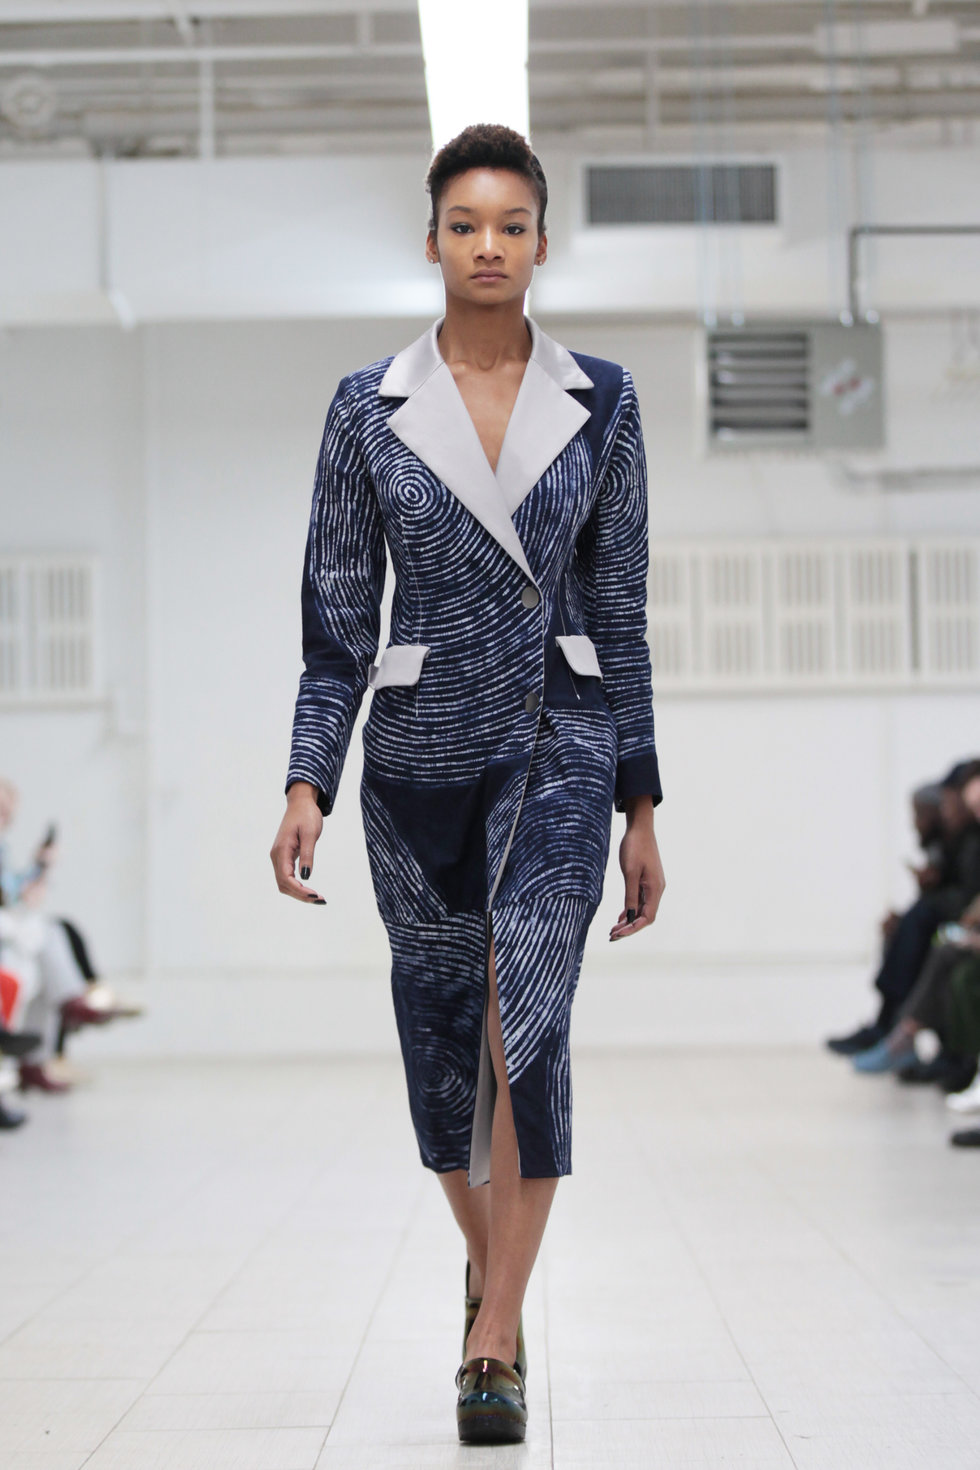 New Maki Oh Collection Brings Sensuality and Yoruba Tradition to New York Fashion Week